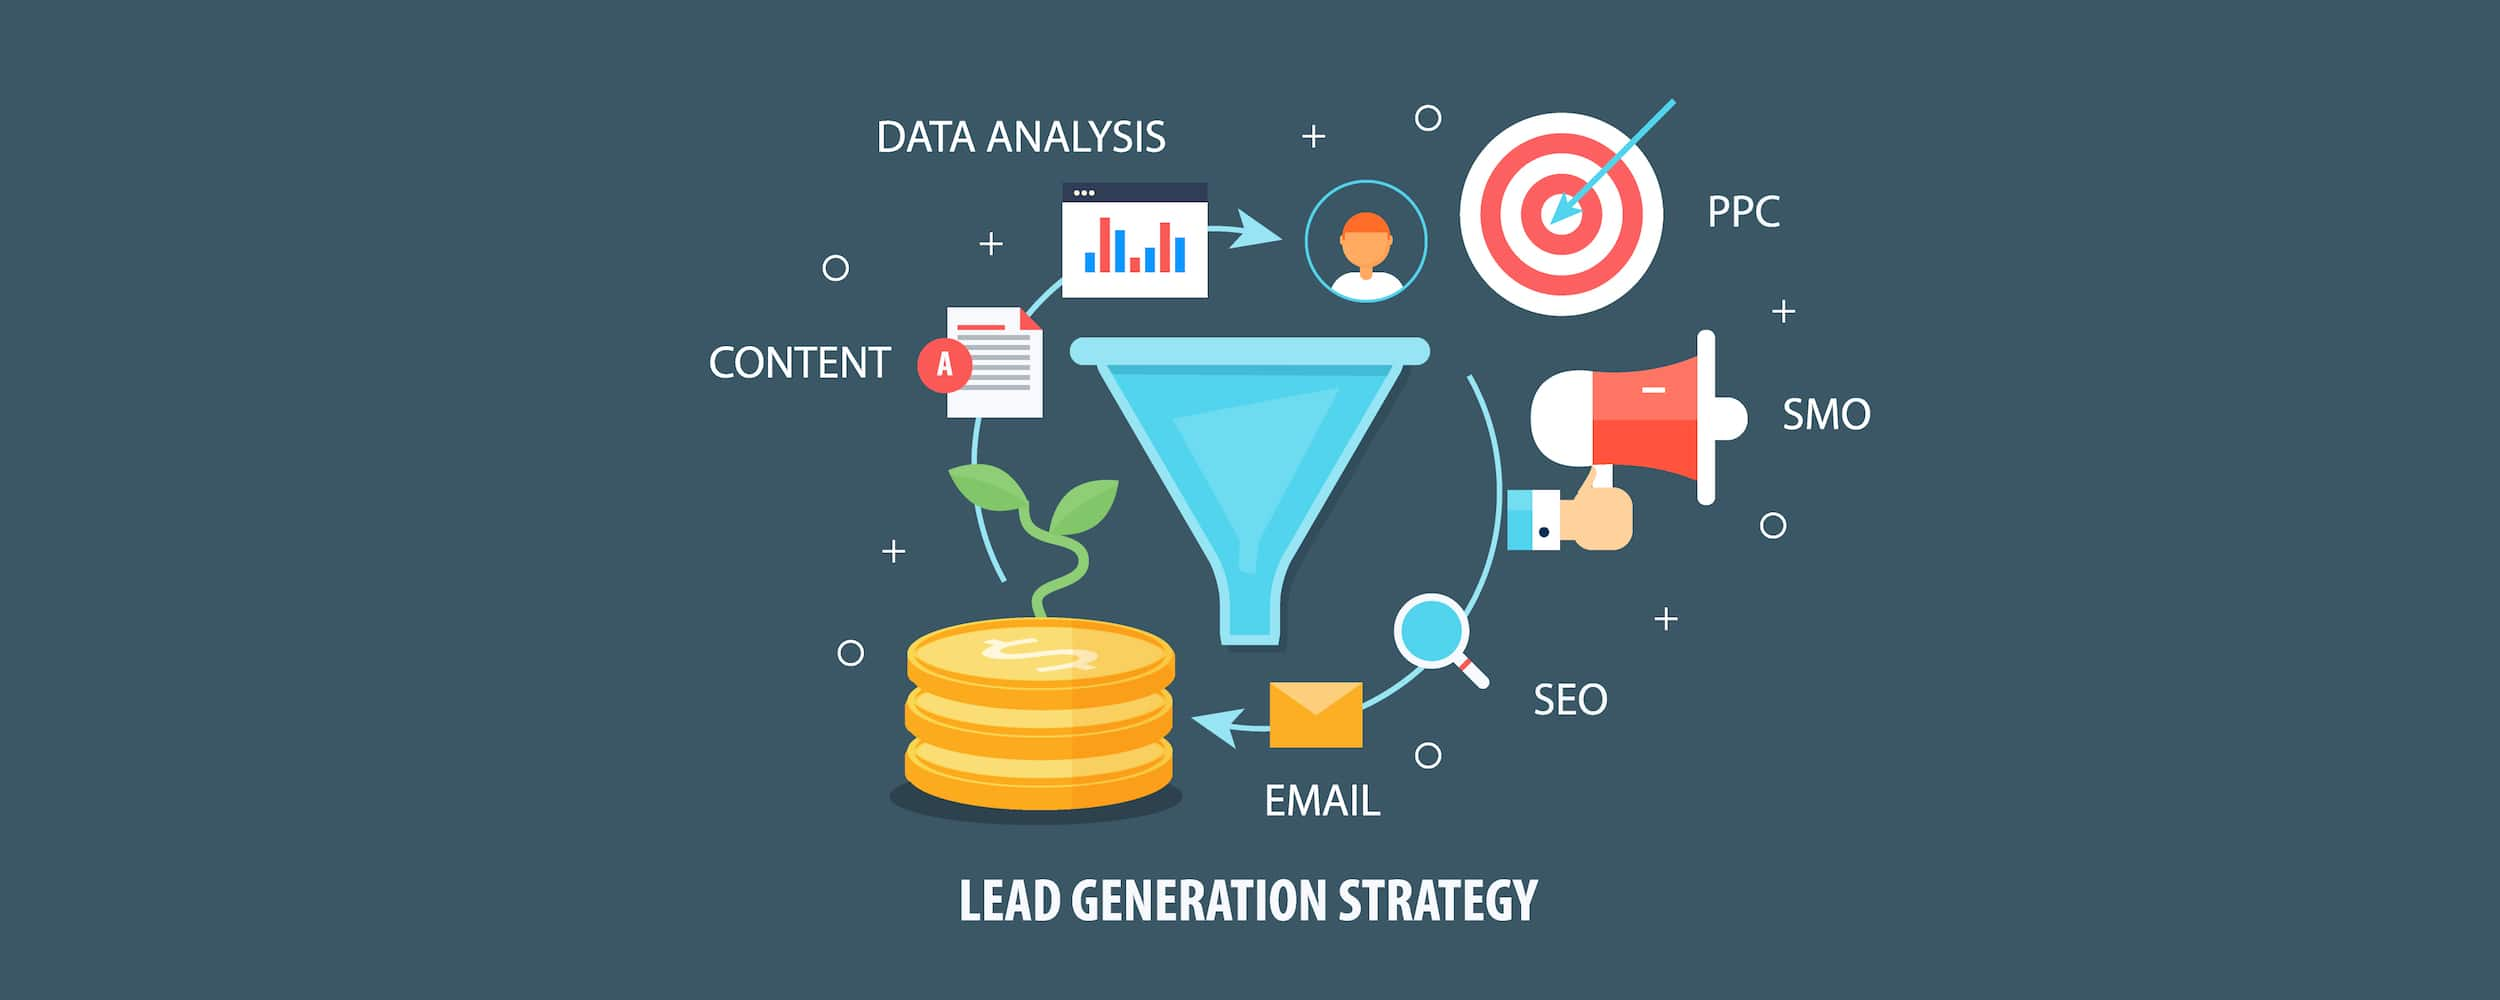 lead generation singapore Novatise